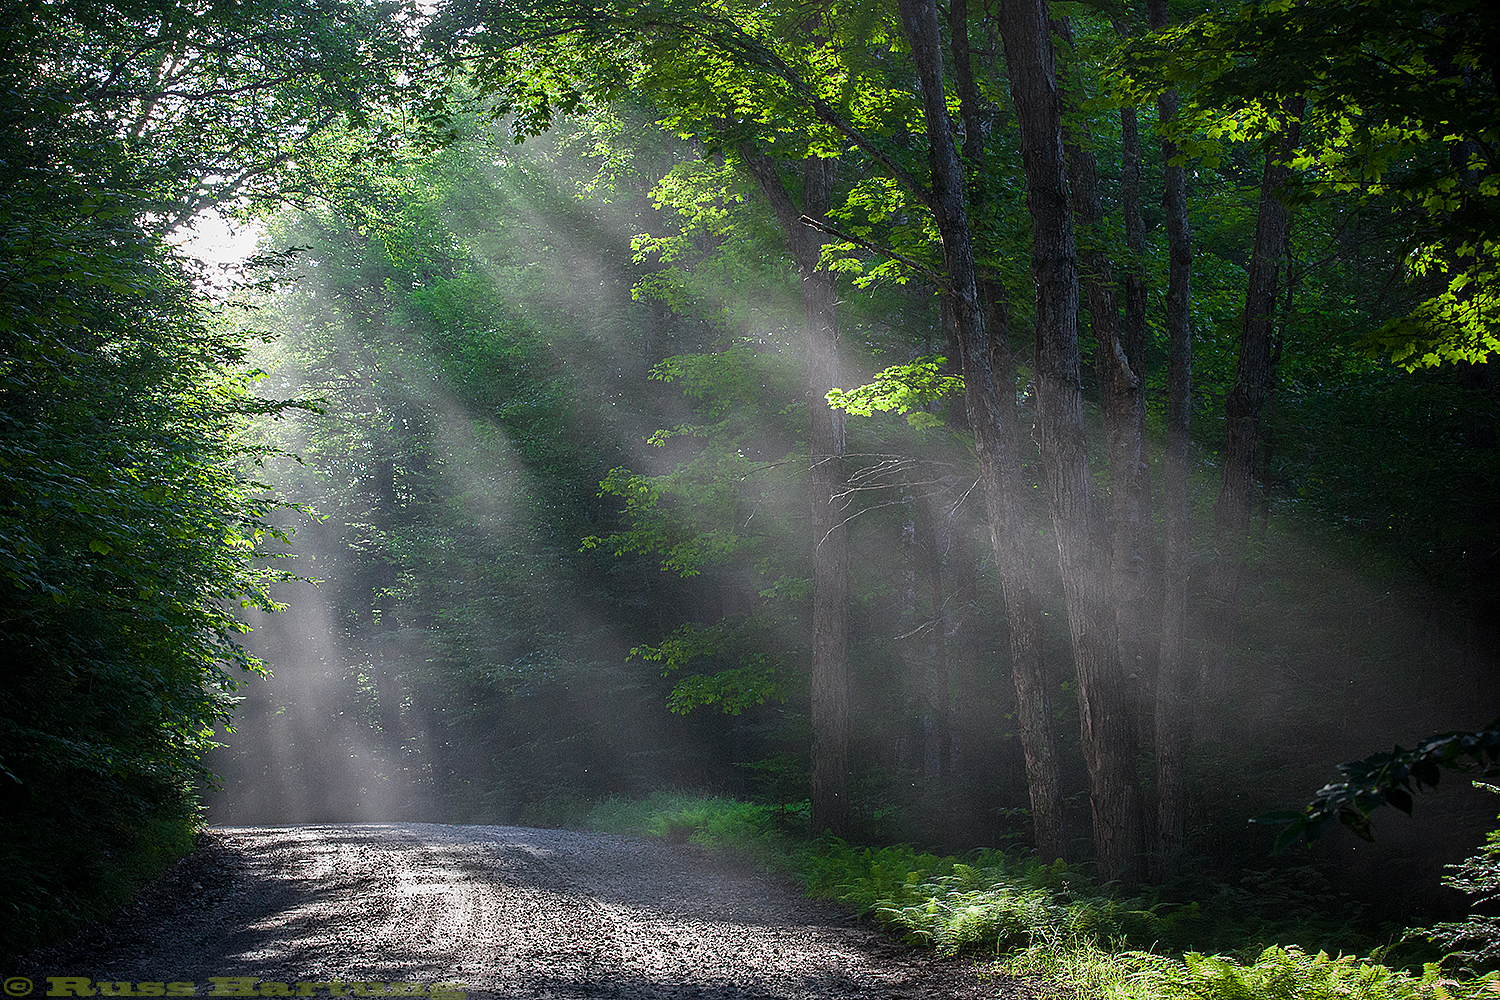 Sunlight filtering through the dust coming off of Floodwood Road in the St. Regis Canoe Wilderness.